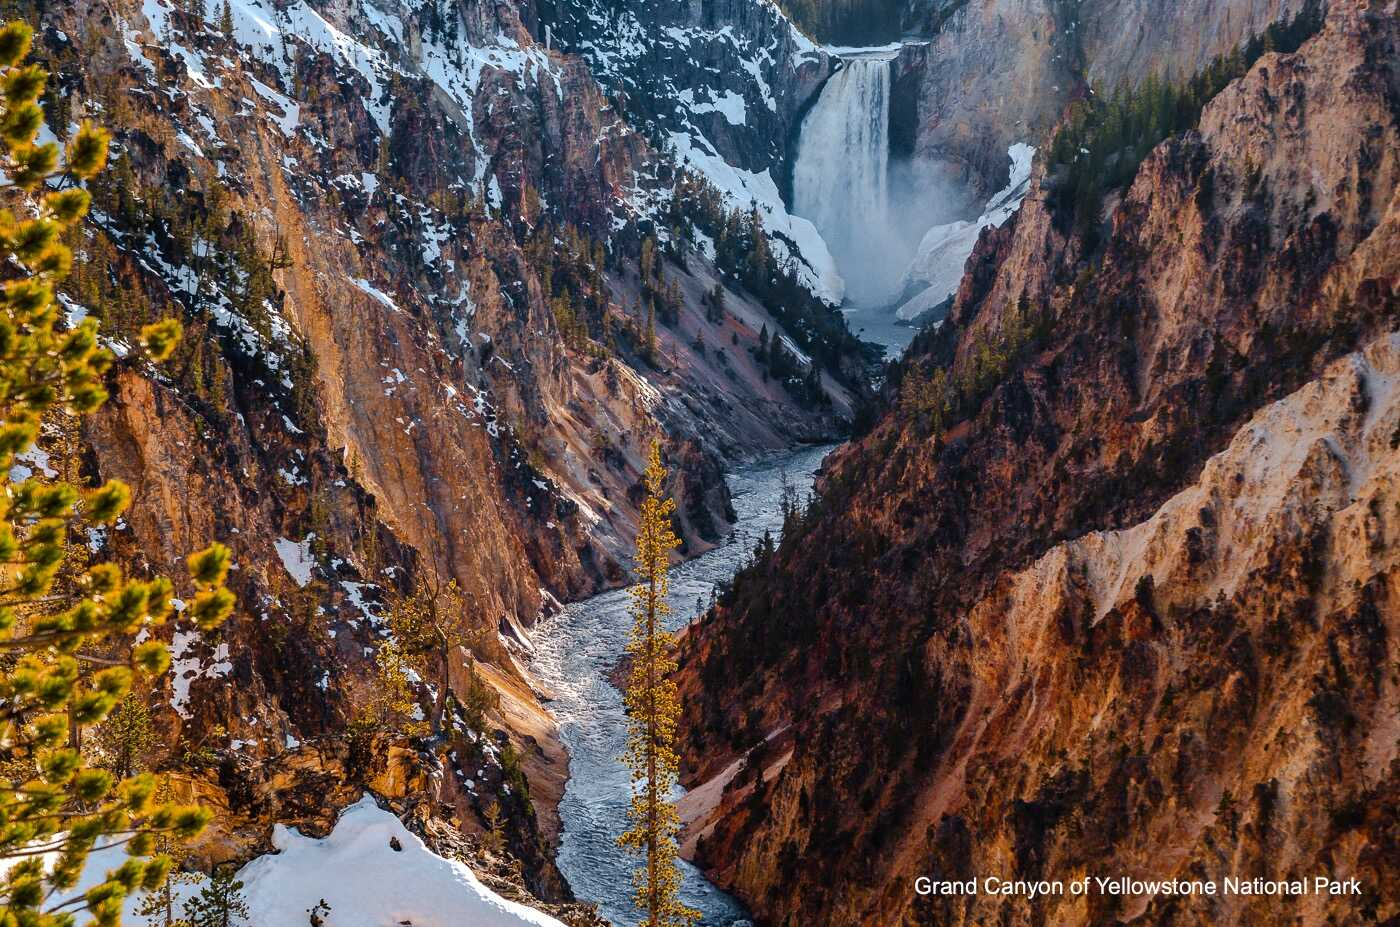 Yellowstone River Canyon & Lower Falls with Title